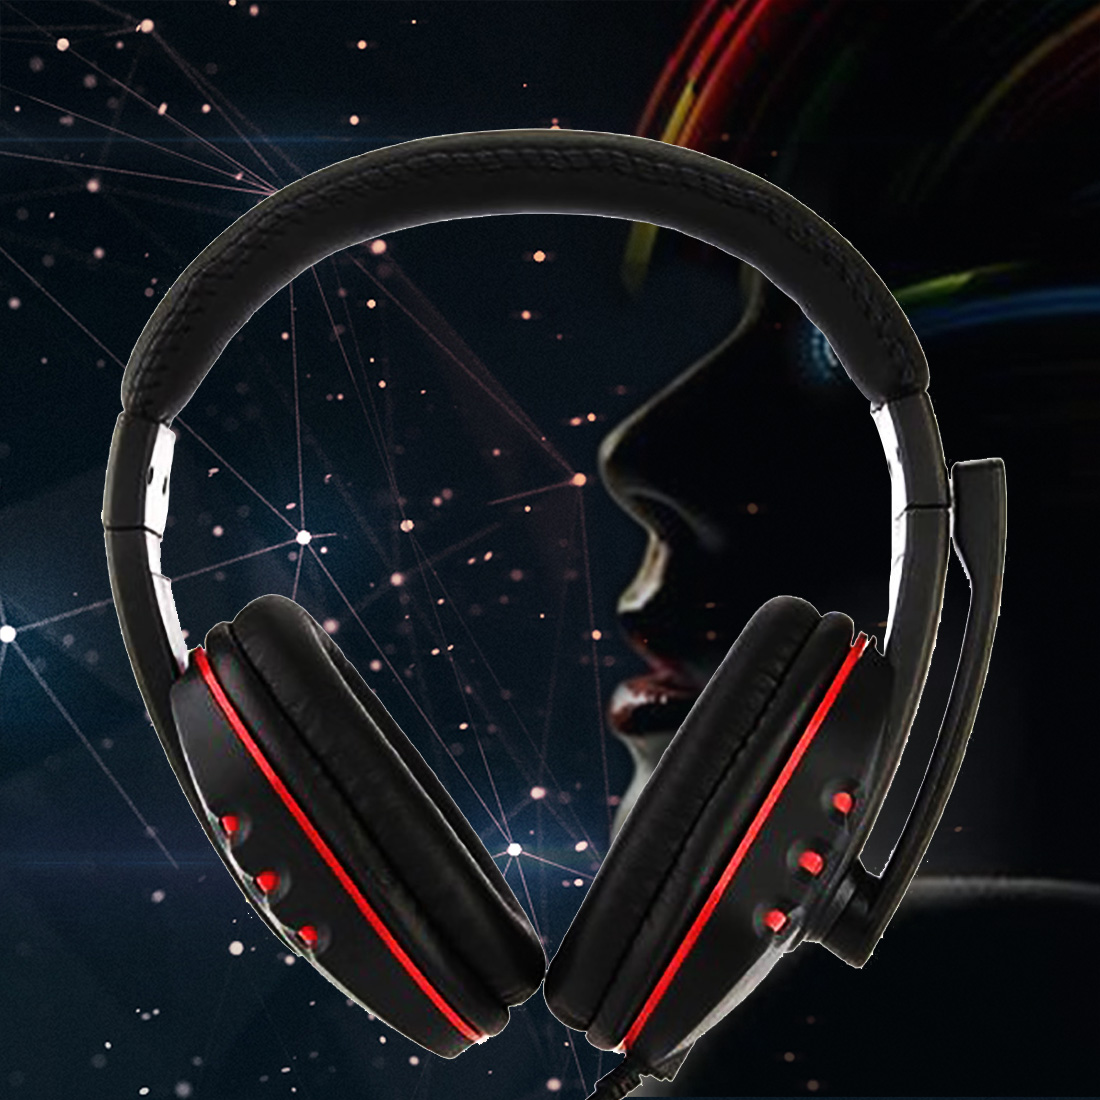 Marsnaska Hot Sale USB Over-Ear Gaming Earphones Bass Stereo Headphones Headset Earbuds With Microphone for pc gamer ps3 jm38 3 5mm in ear stereo earphones headphones music headset earbuds with microphone for iphone samsung xiaomi huawei mp3 mp4 pc